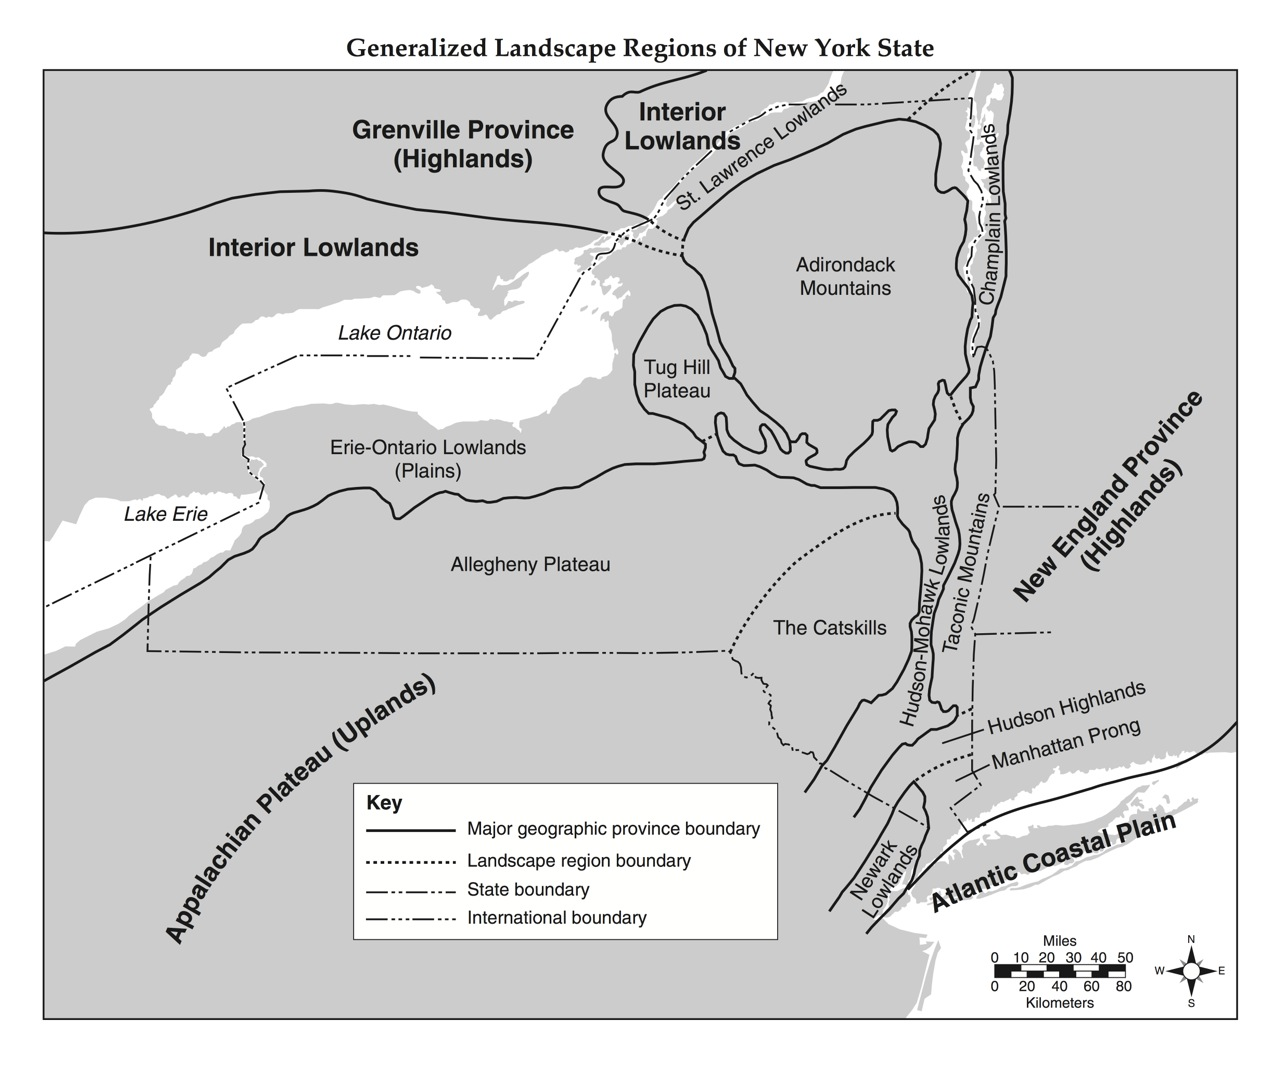 4 6 2020 Which Landscape Region In Nys Has The Oldest Bedrock Lessons Blendspace